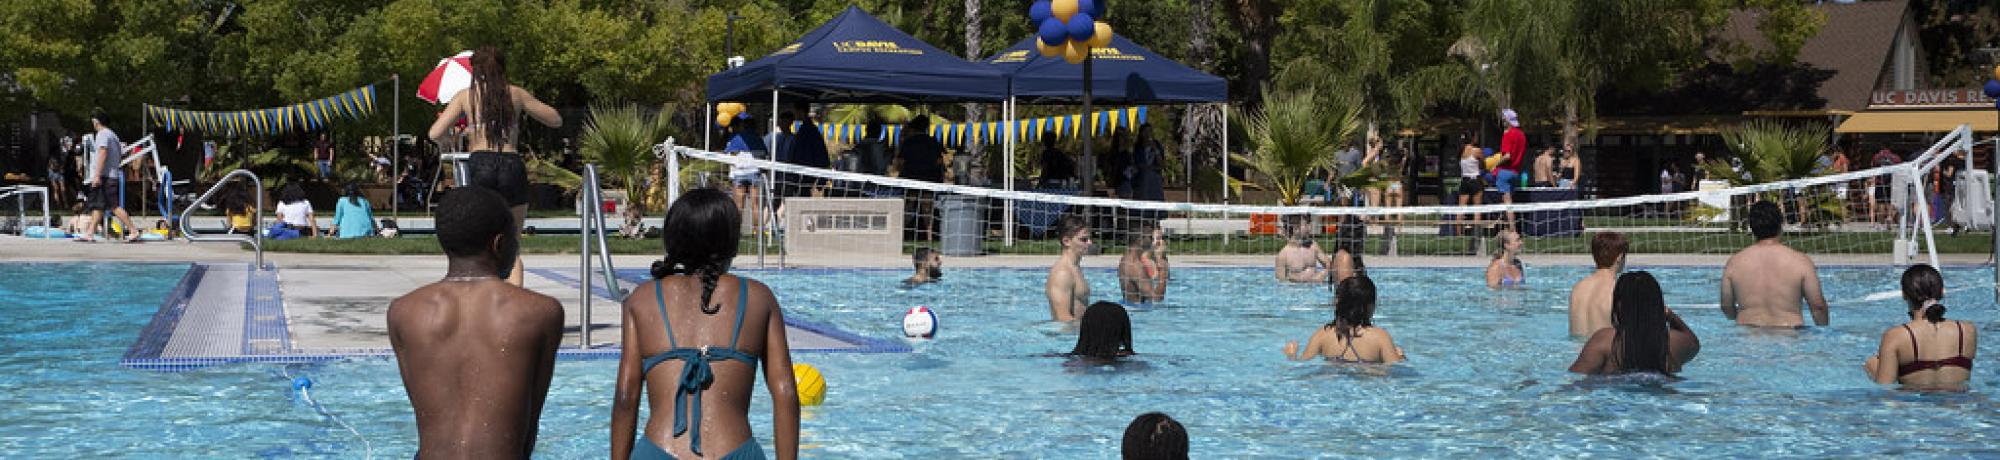 Students play Water VolleyBall